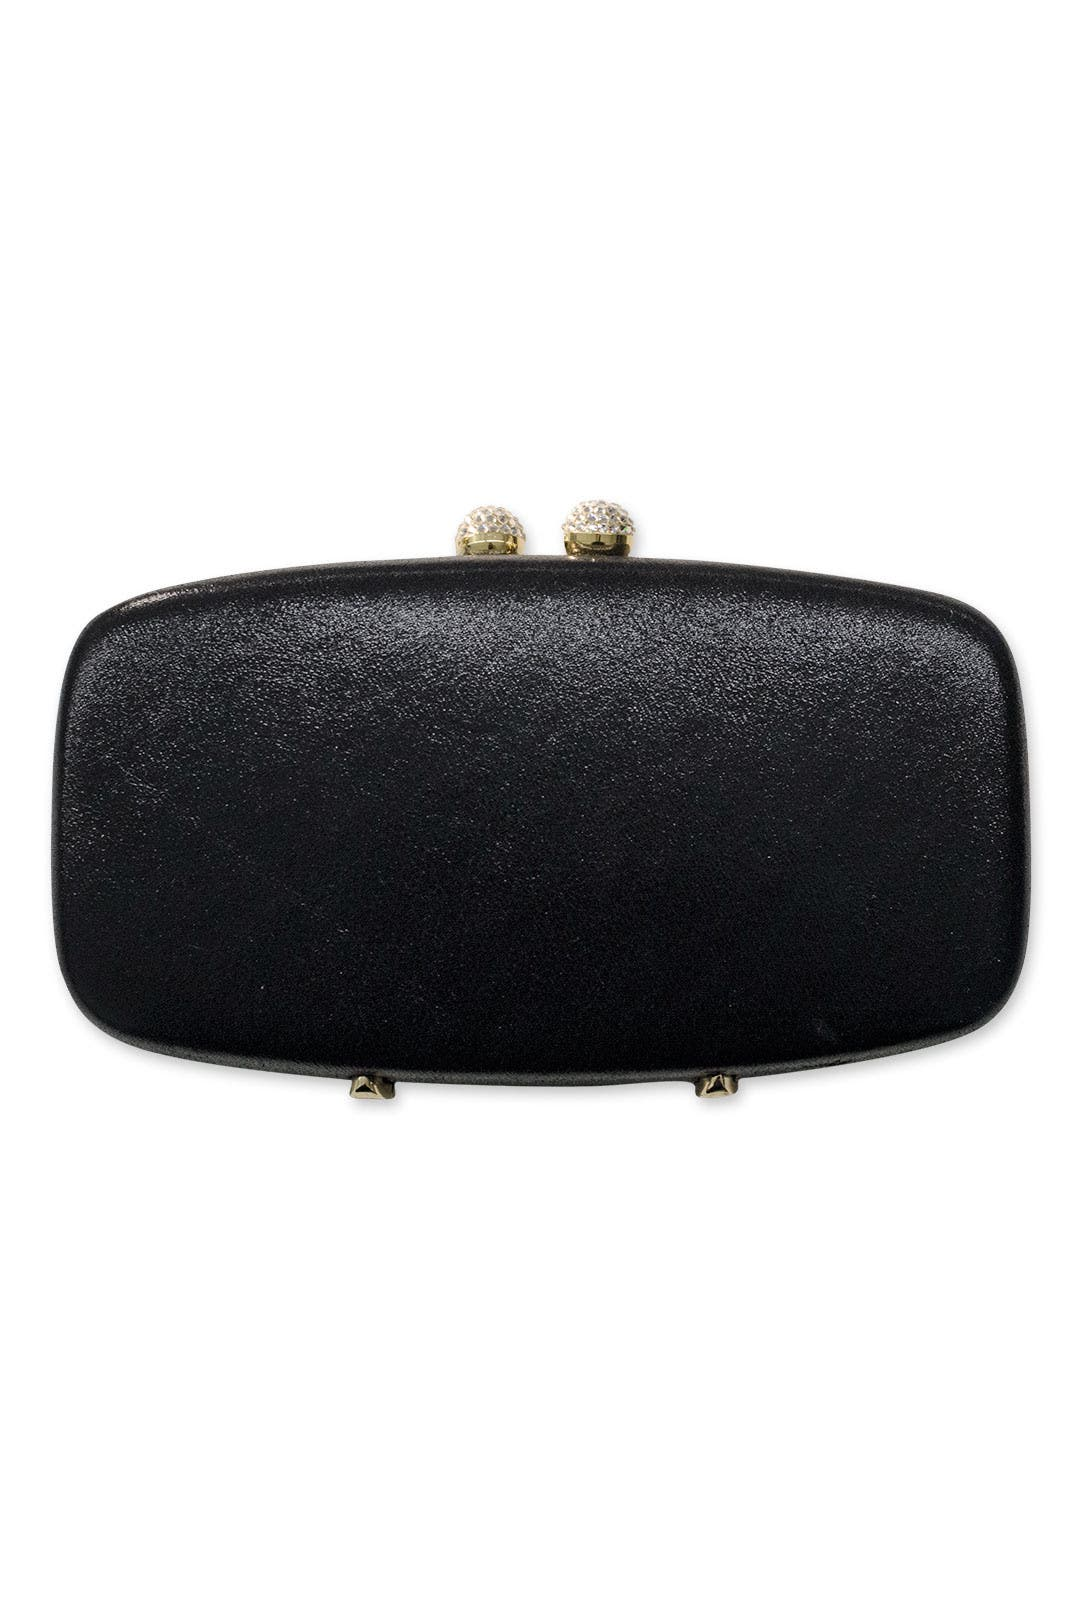 Tele Chic Clutch by Love Moschino Accessories